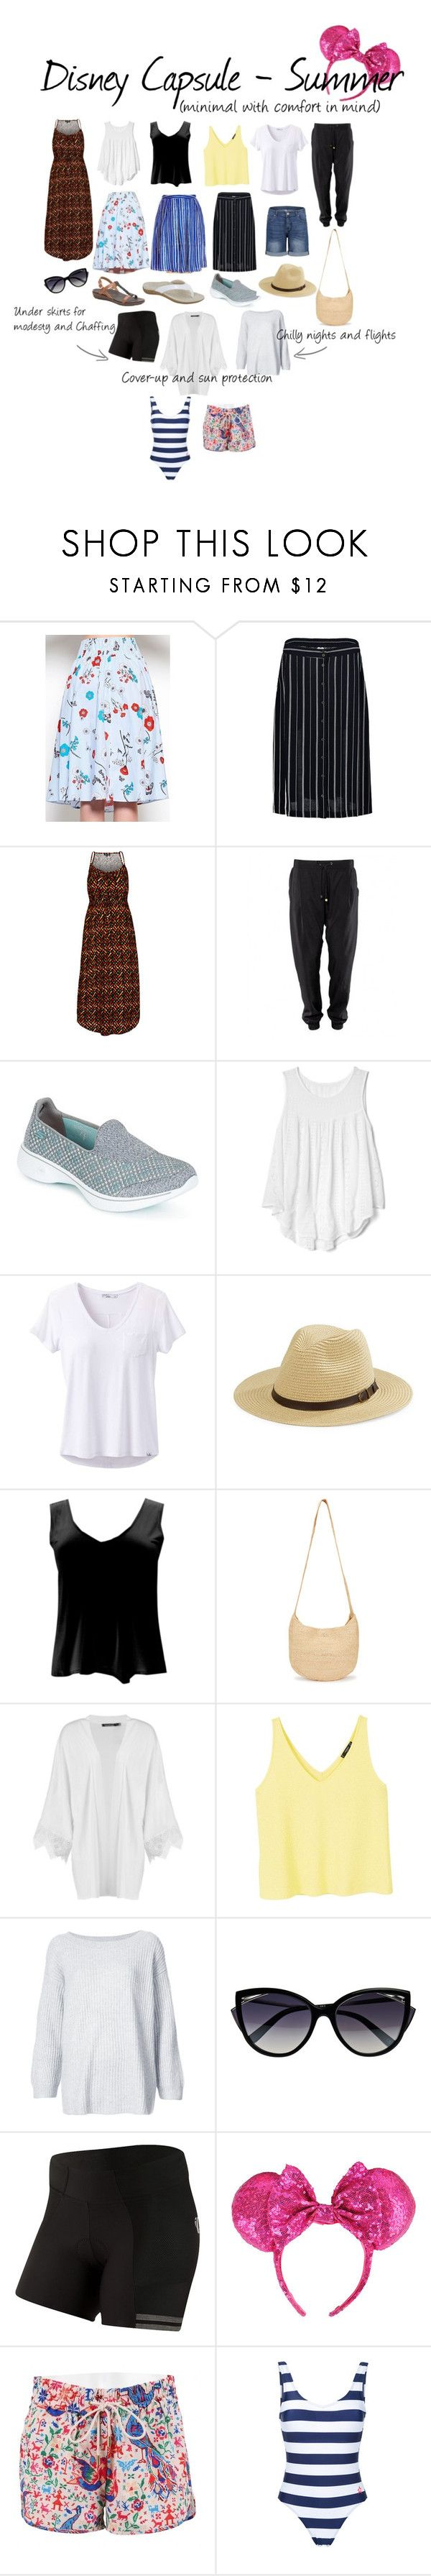 Capsule wardrobe for a trip to Disneyland or Disney World in summer. Minimal amount with comfort in mind. Sandals with arch support, memory foam sneakers. Sun protection. No short skirts /shorts. Bike shorts for under skirts/ dresses to avoid fly up on rides and to avoid chaffing.